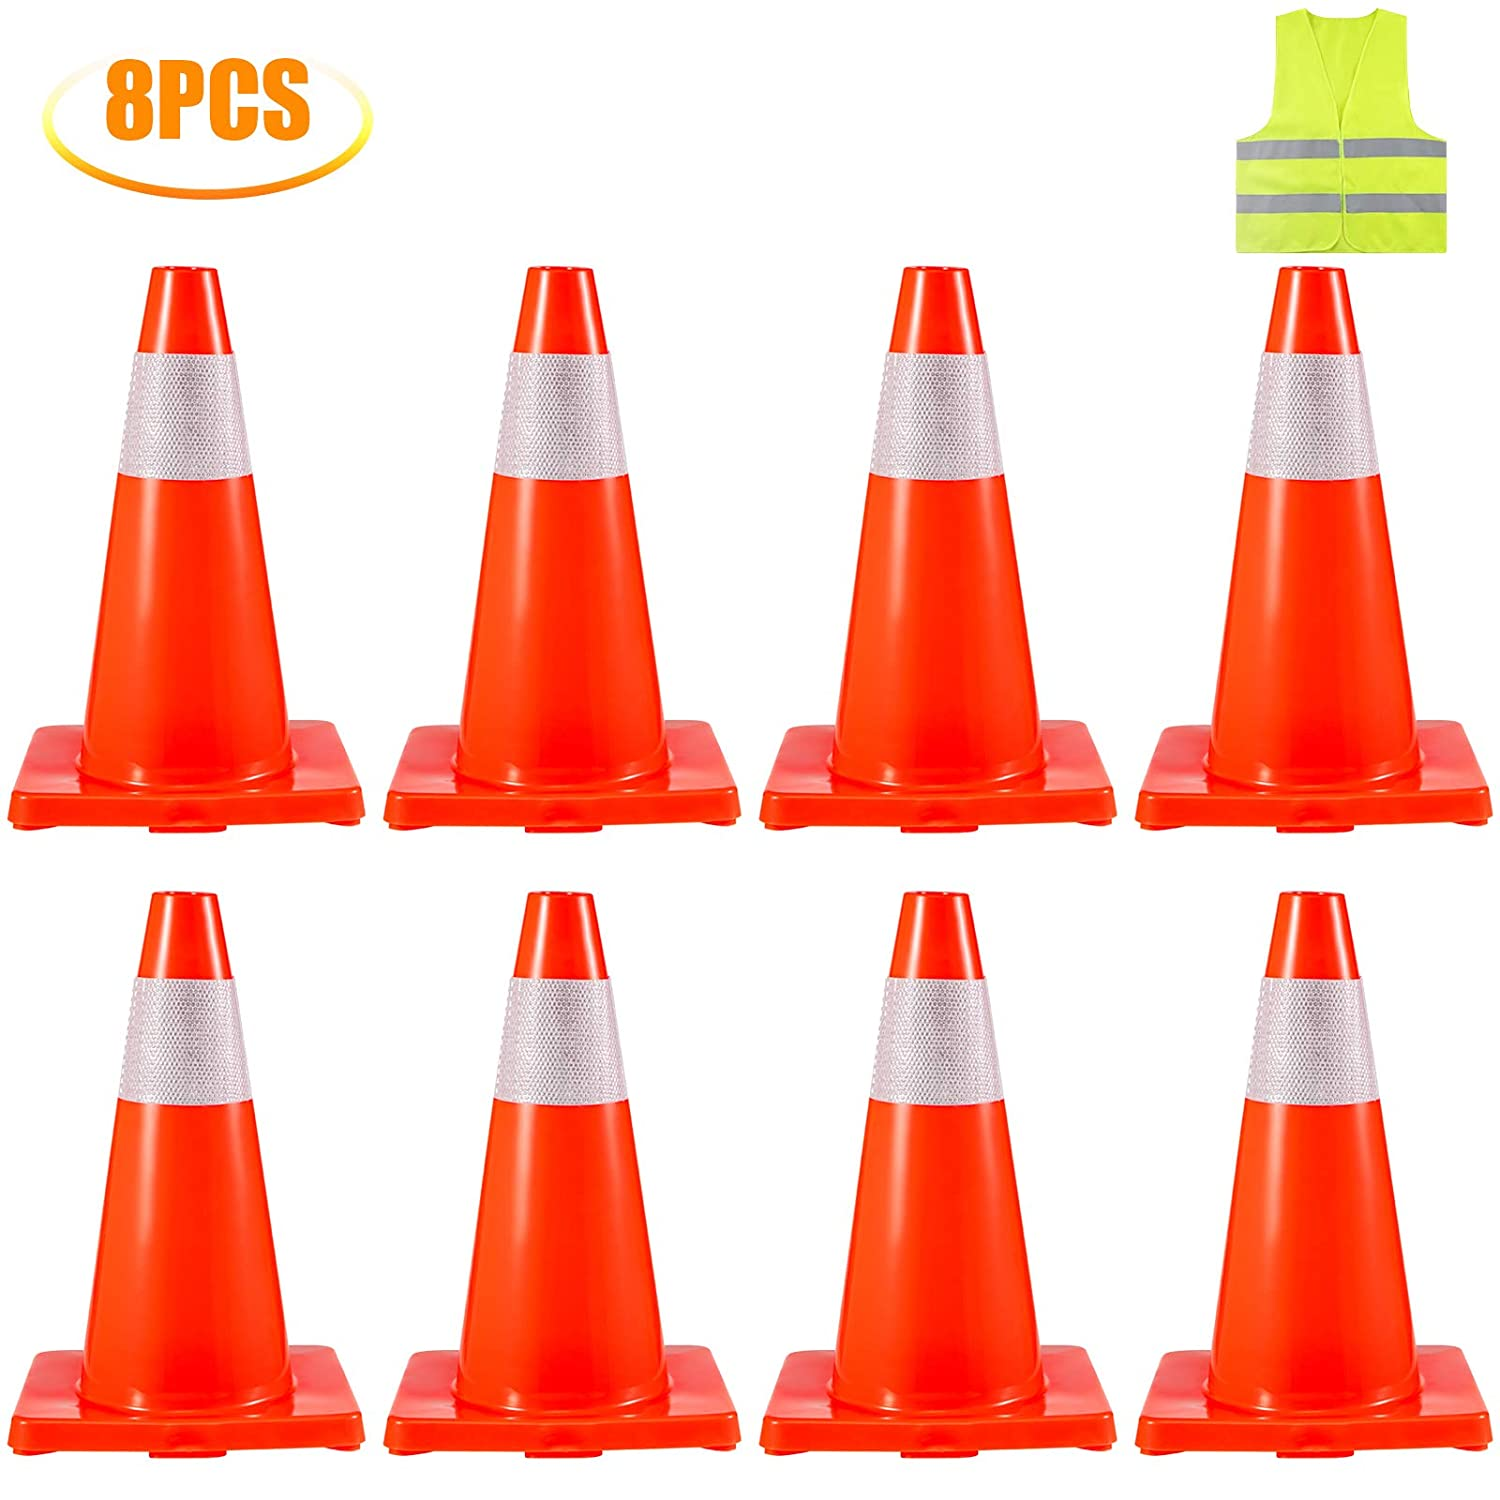 Suplander 20PCS Traffic Cones 18 Safety Cones PVC Orange Traffic Safety Cone with Reflective Collar and Vest for Parking Training